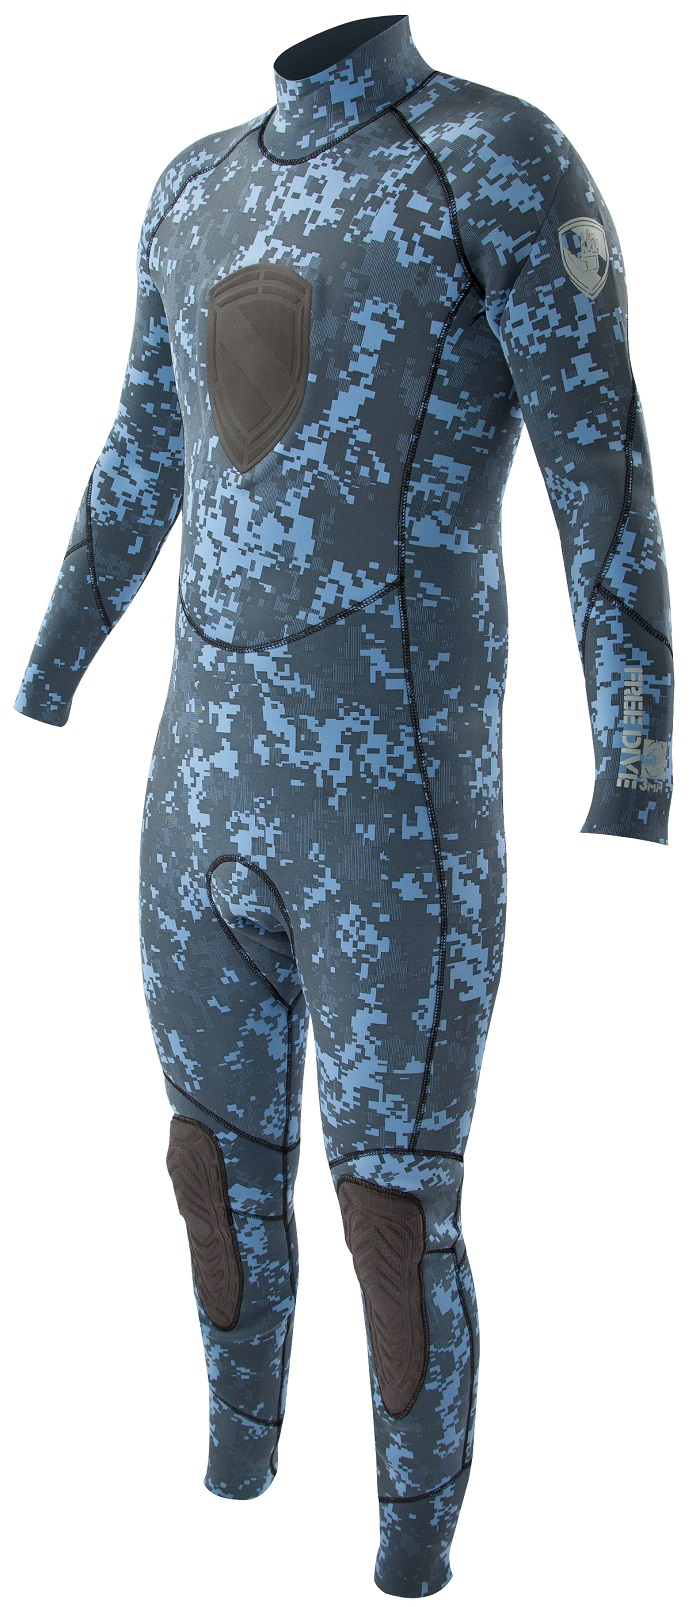 Body Glove 5mm EX3 Men's Free Dive Camo Wetsuit- NEW Blue Camo!